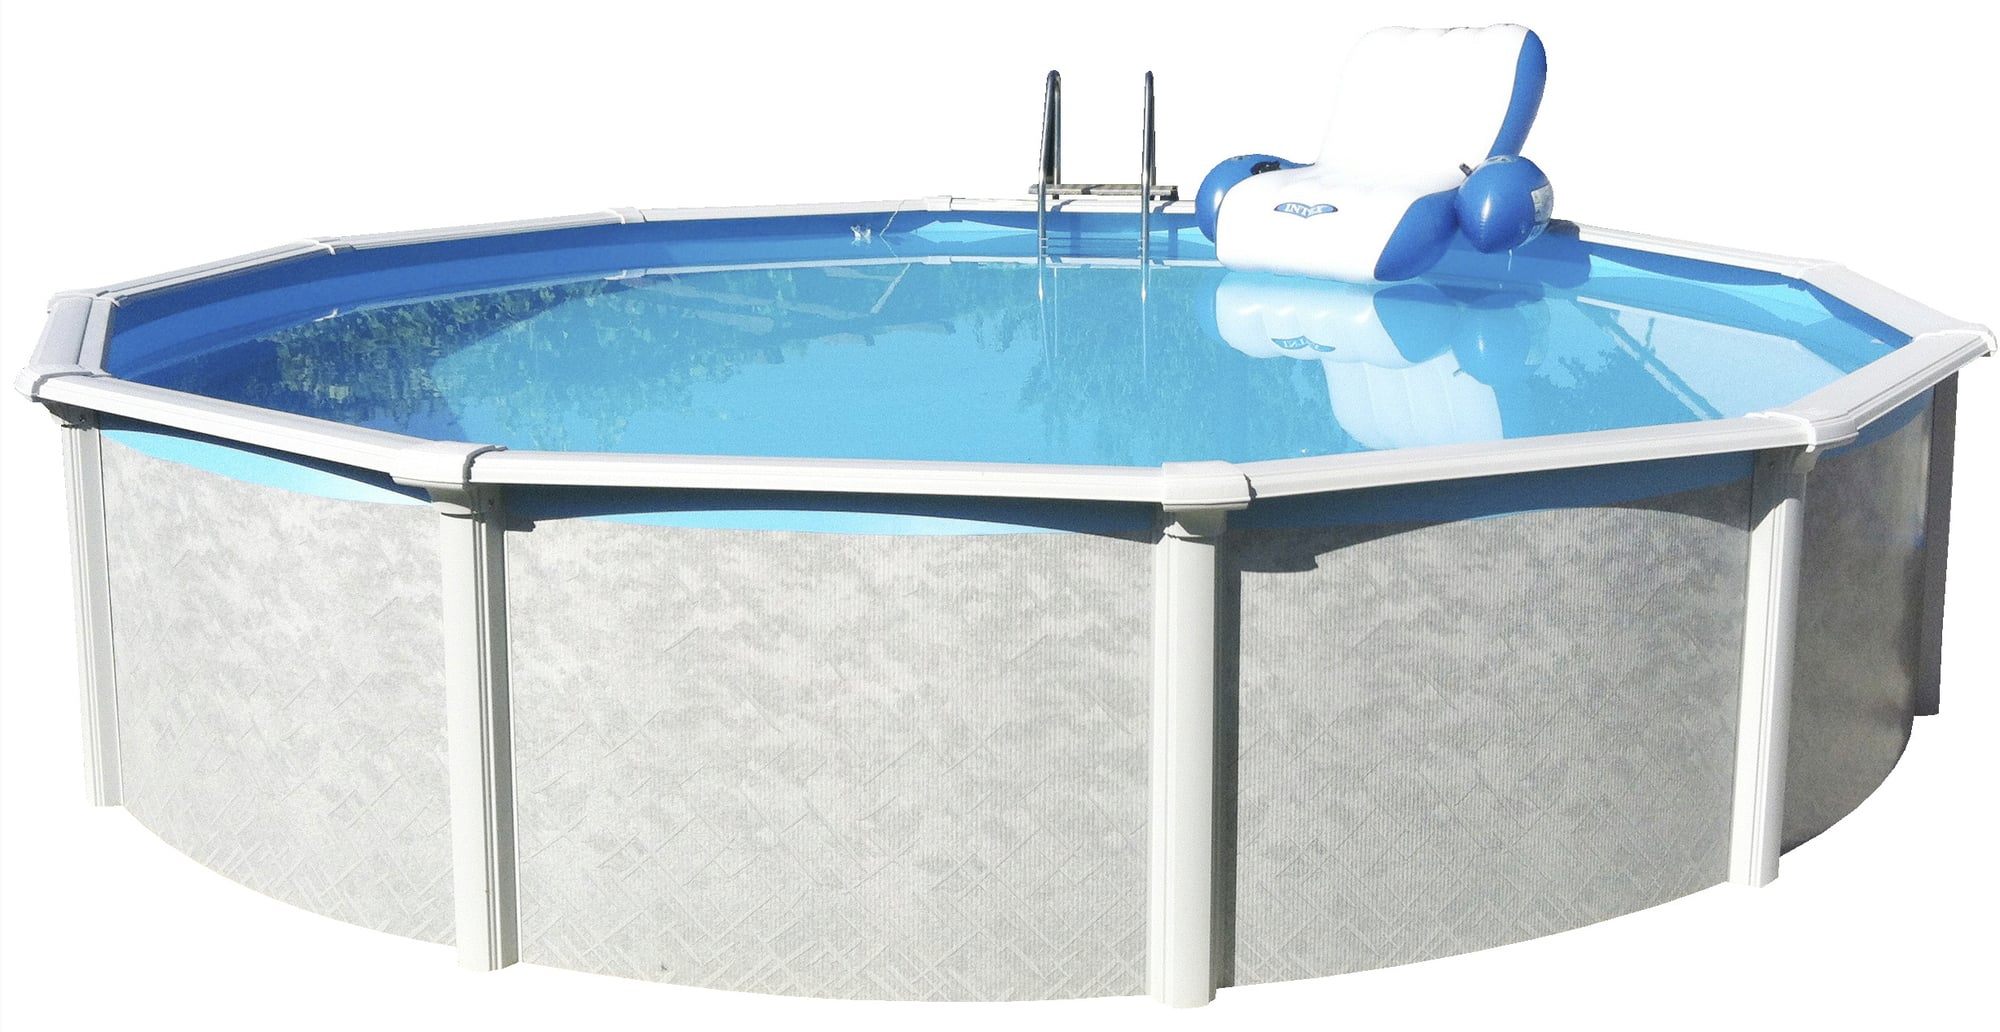 Pool Rund Steinoptik Pool Set Rund